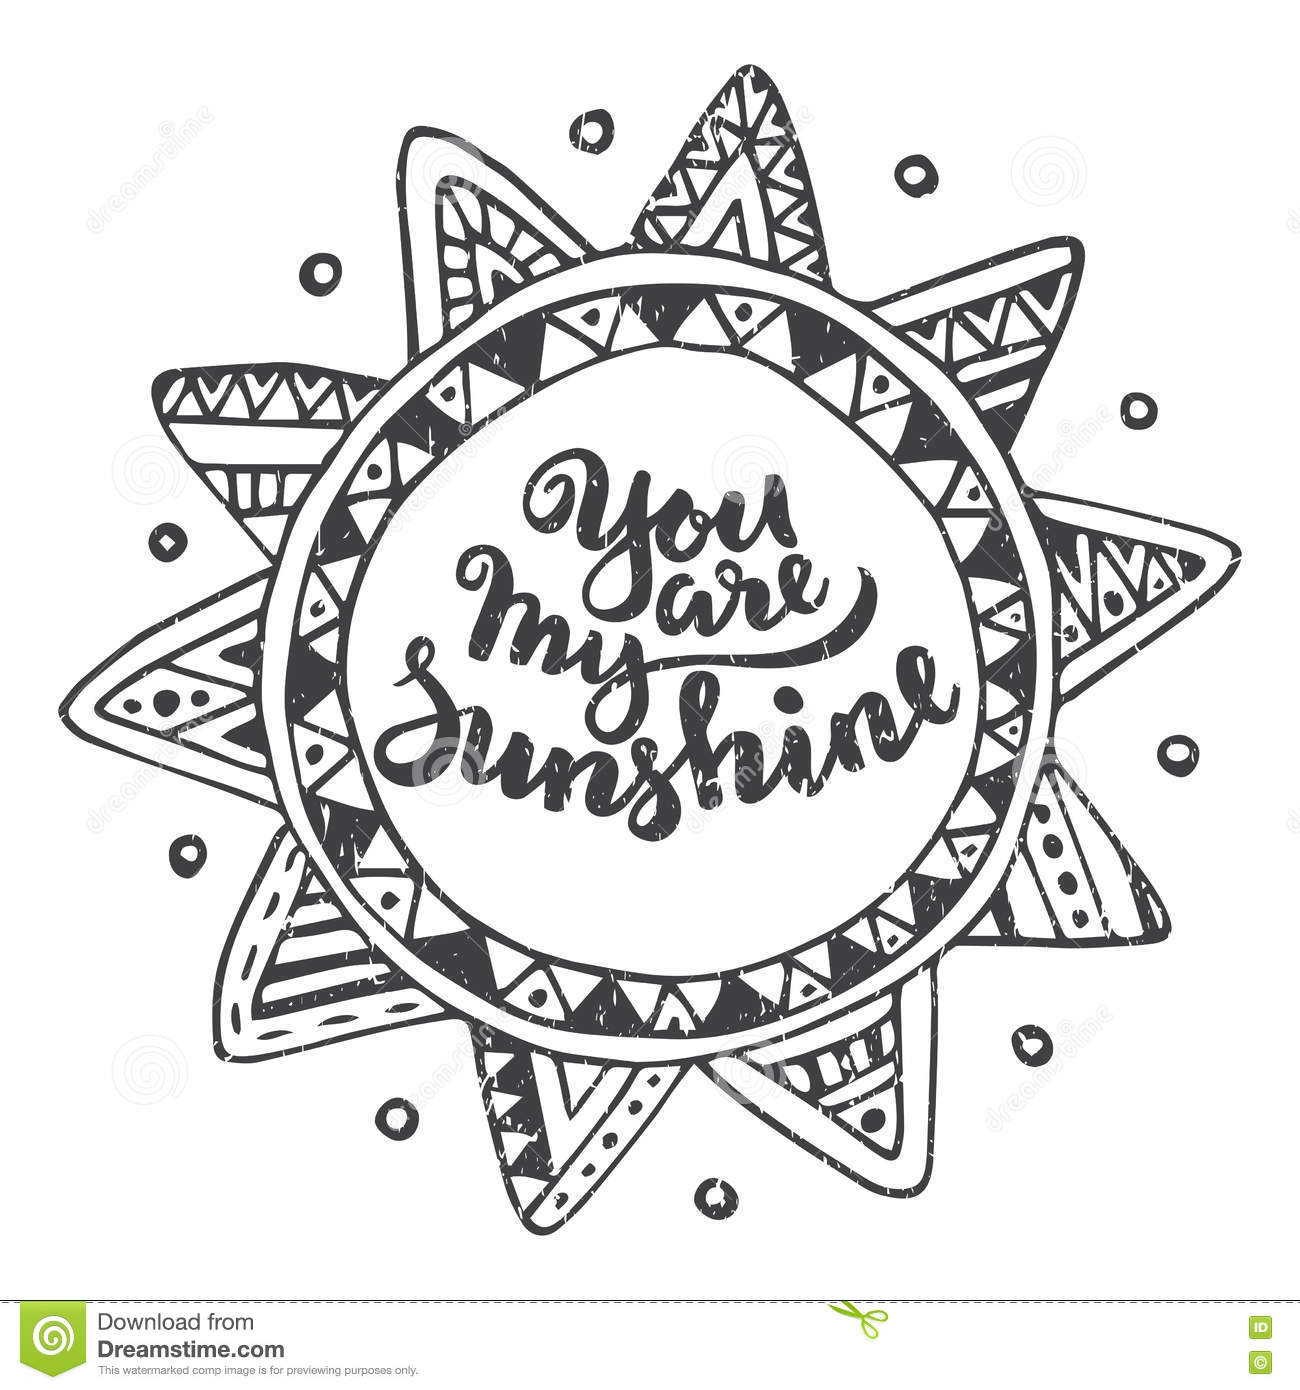 Handwritten Quote You Are My Sunshine On Ethnic Ornate Sun